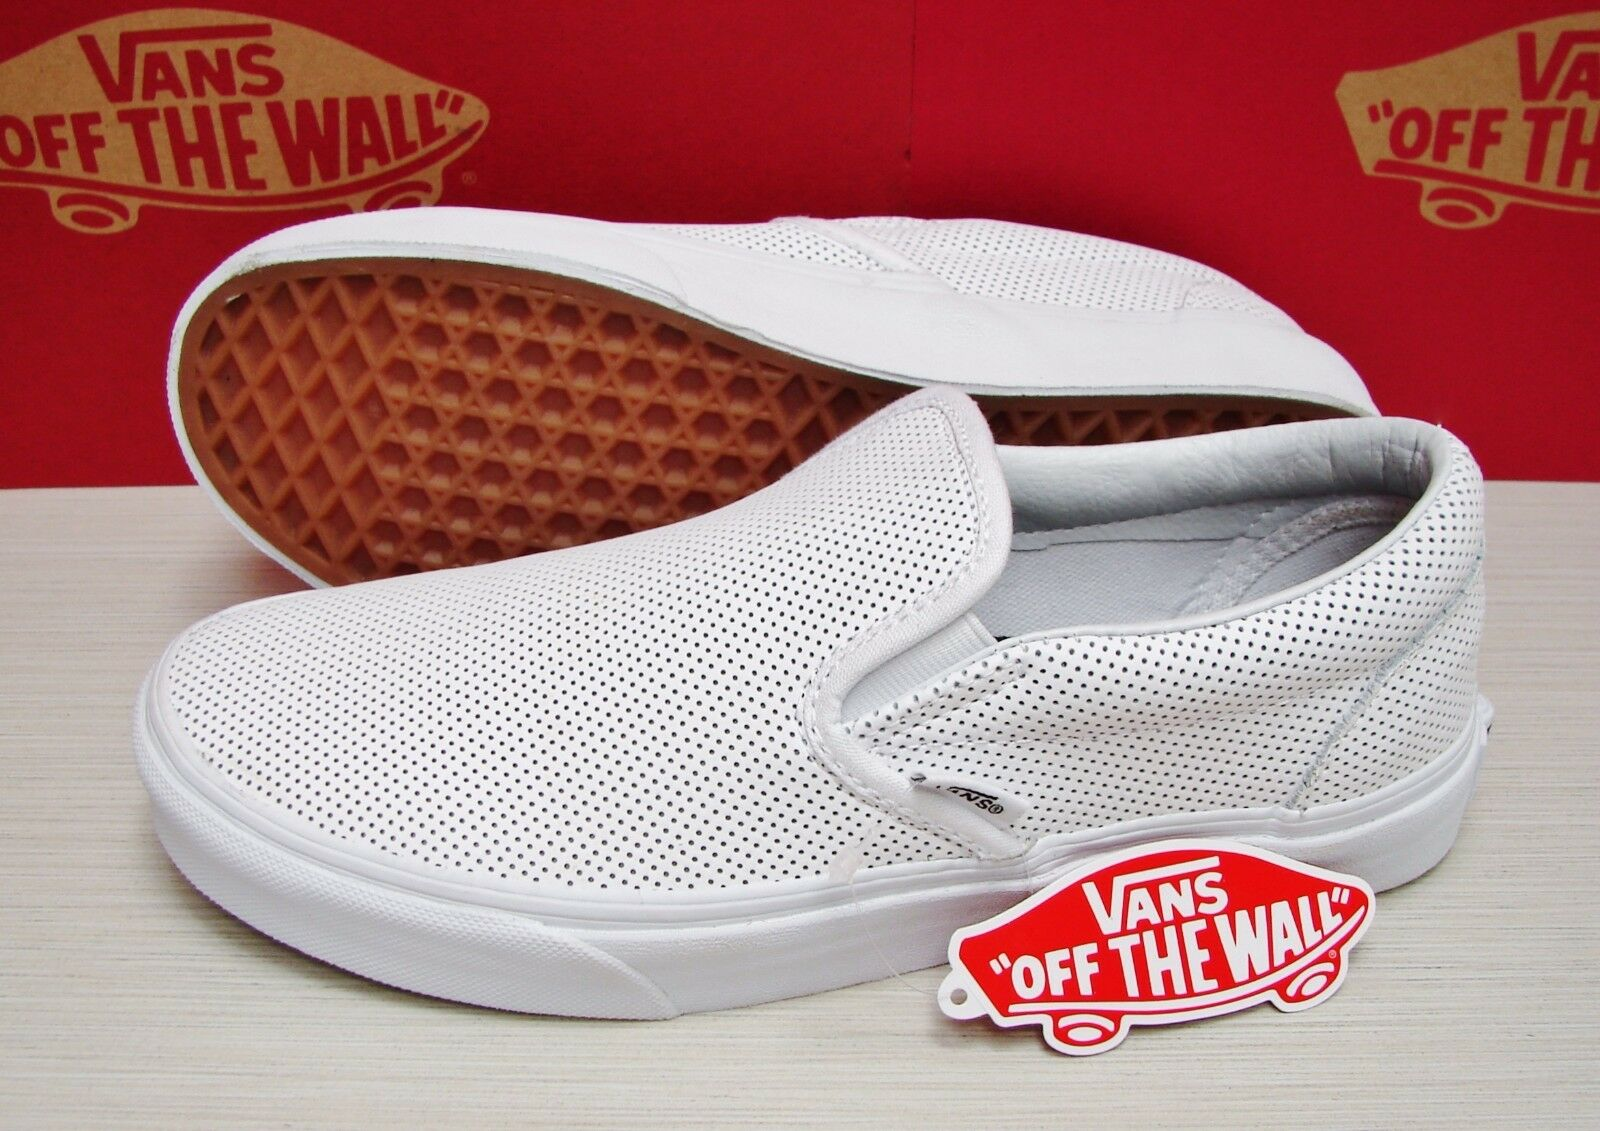 Vans Classic Slip On Perf Leather White Women's Size 5